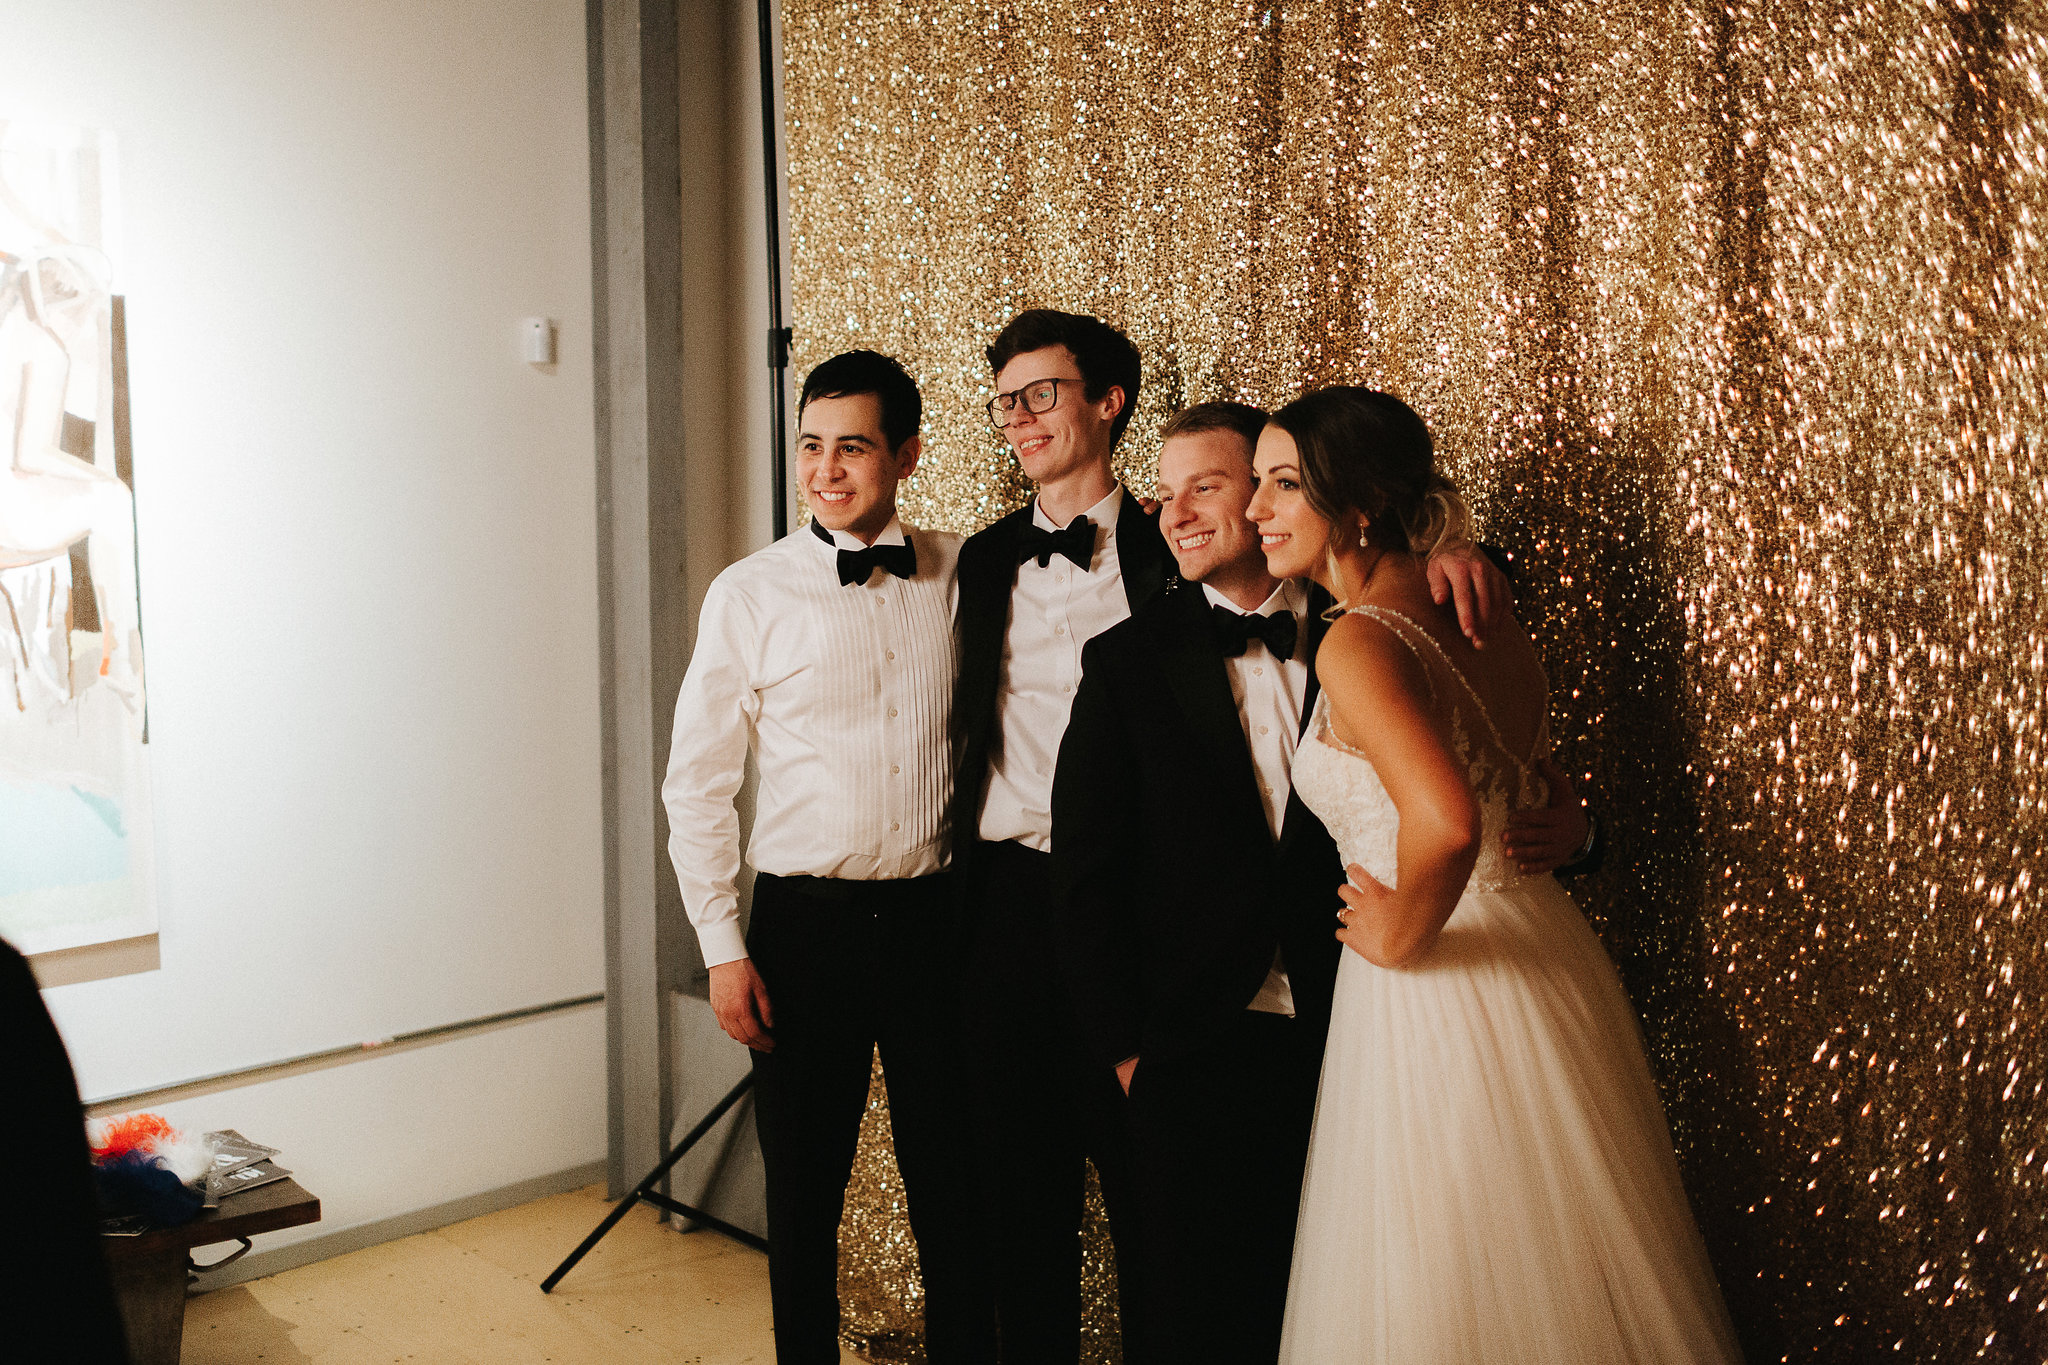 Oh Snap Event Photo Booths Western Washington Photo Booth Rentals